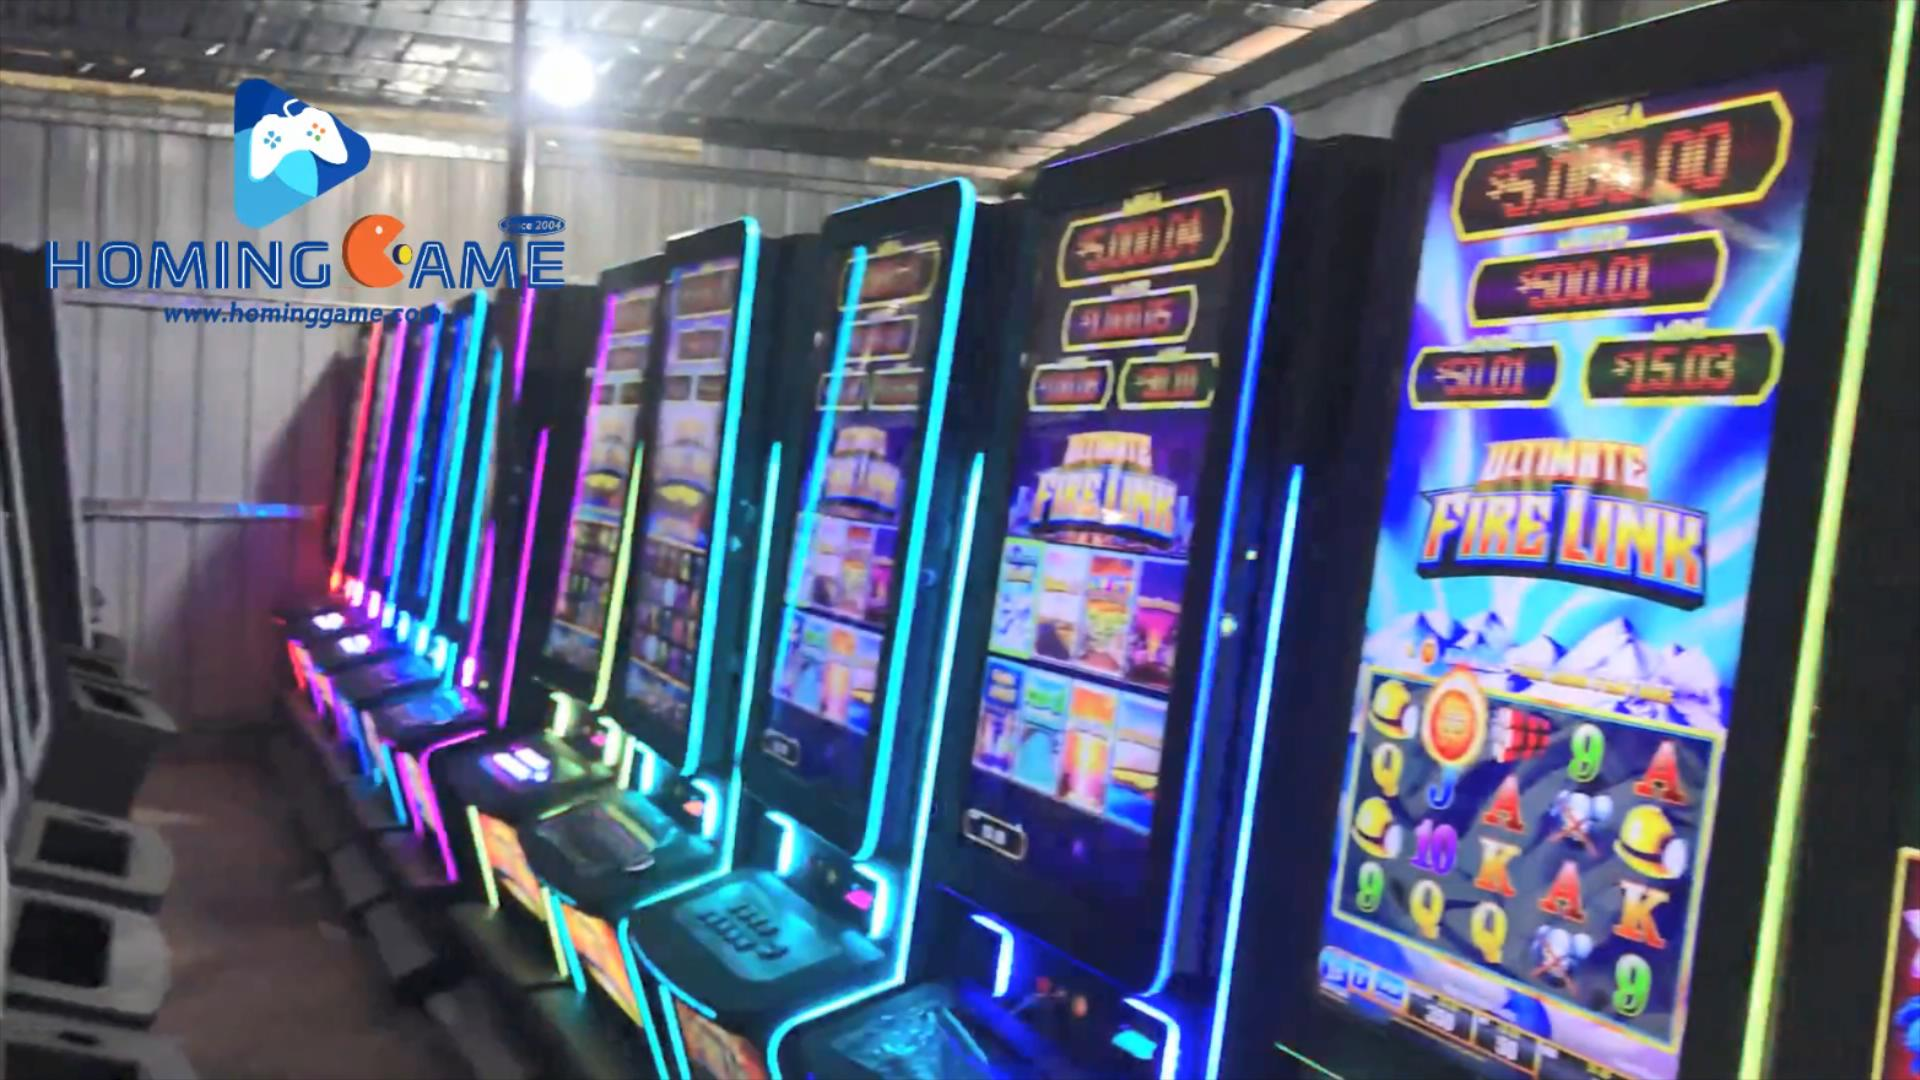 2021 Specialize in Manufacturing 43' Touch Fire Link slot game,Buffalo Gold slot game,fusion 4 slot game,Money Gold,Dragon Link,Panda link,golden master,high roller slot game,lighting slot game by HomingGame(Order Call Whatsapp:+8618688409495)<br /><br />